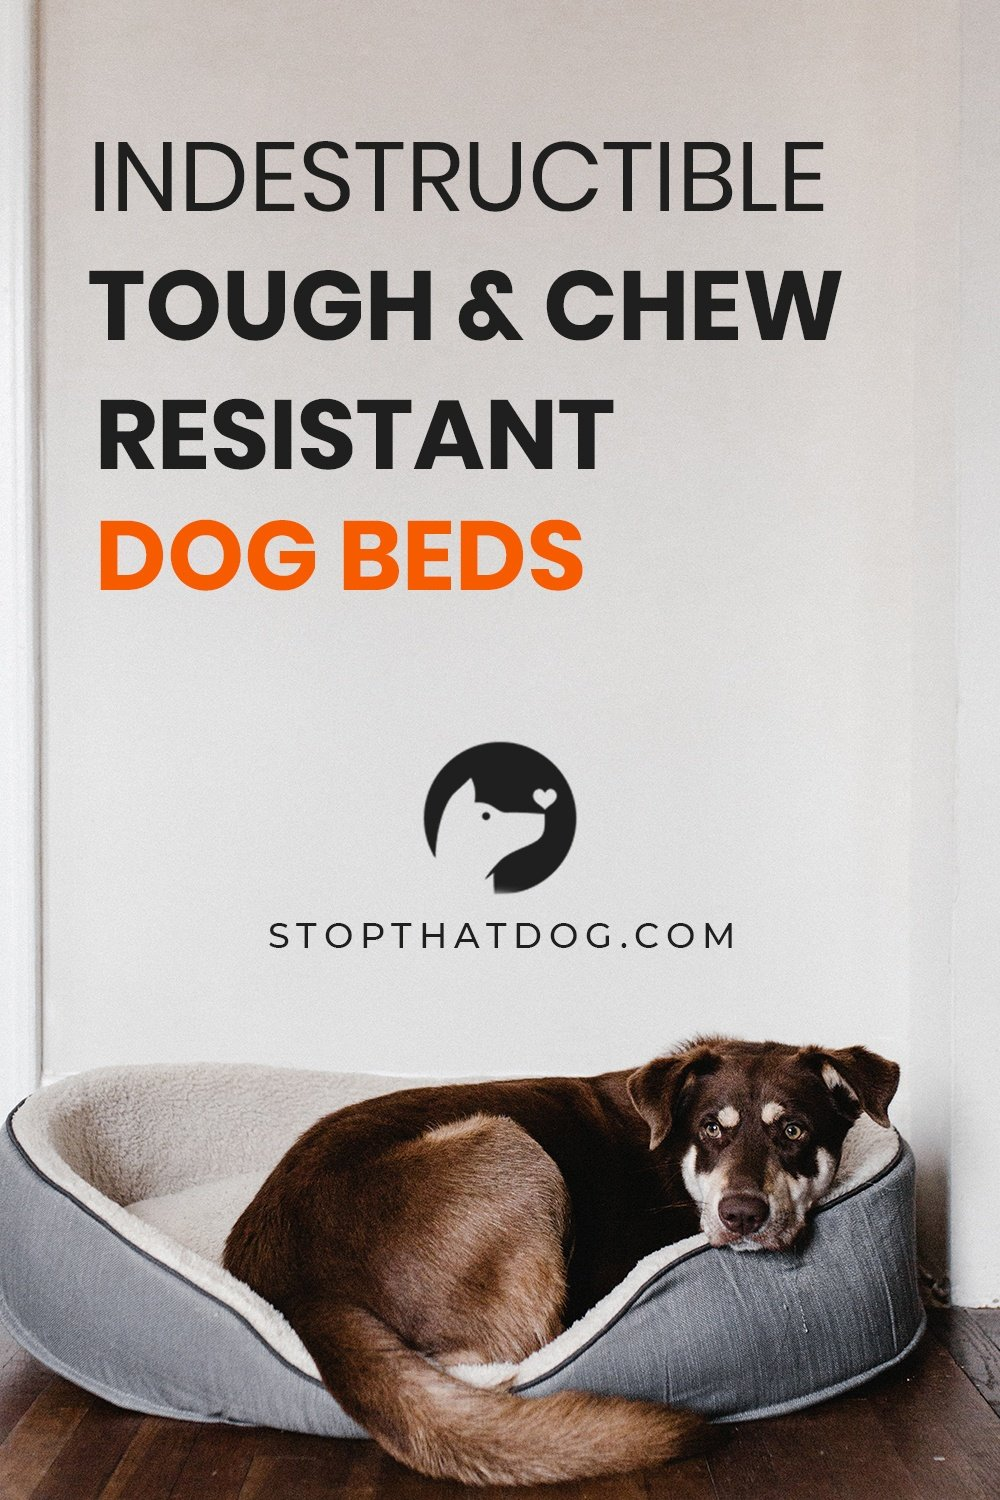 Looking for tough, chew-resistant, and indestructible dog beds? If so, this guide will show you the best options on the market.